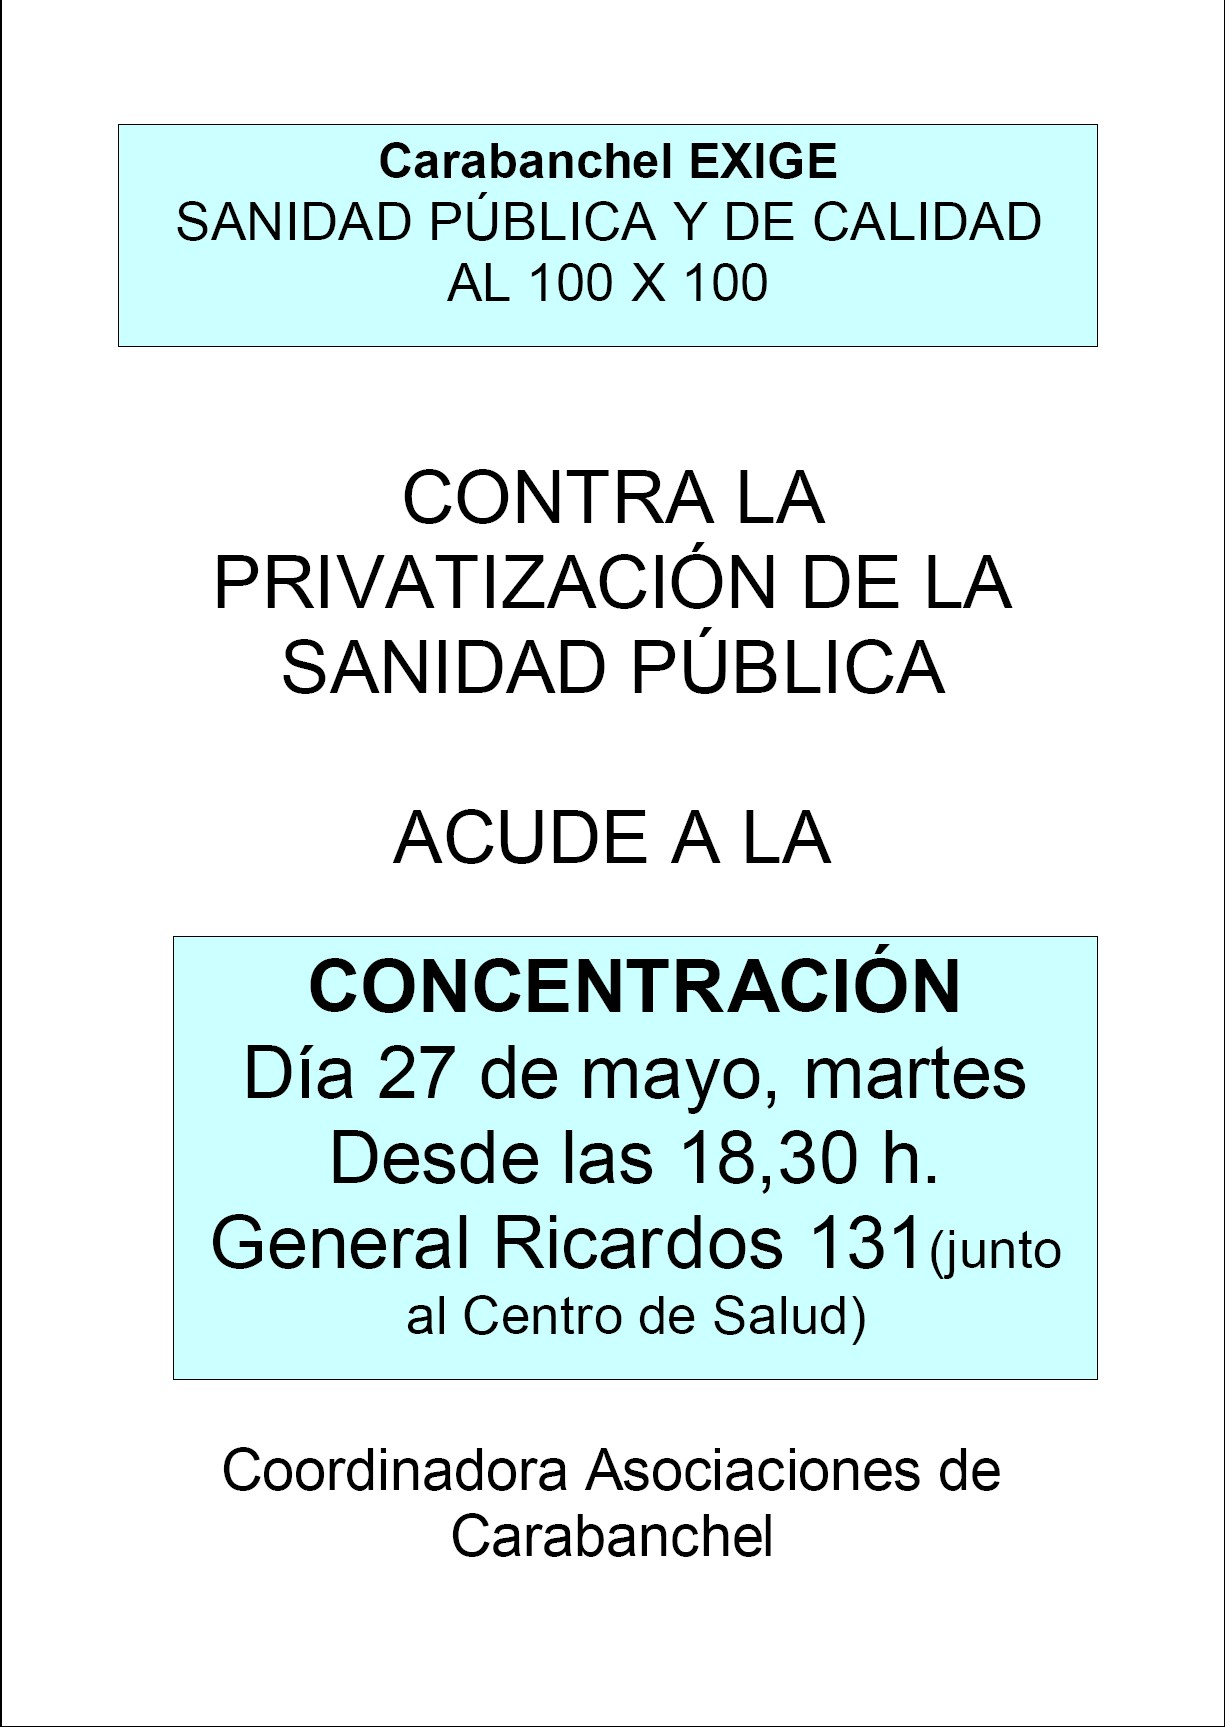 Concentracin del 27 de mayo, martes a las 18,30 horas en el Centro de Salud de General Ricados, calle General Ricardos, 131